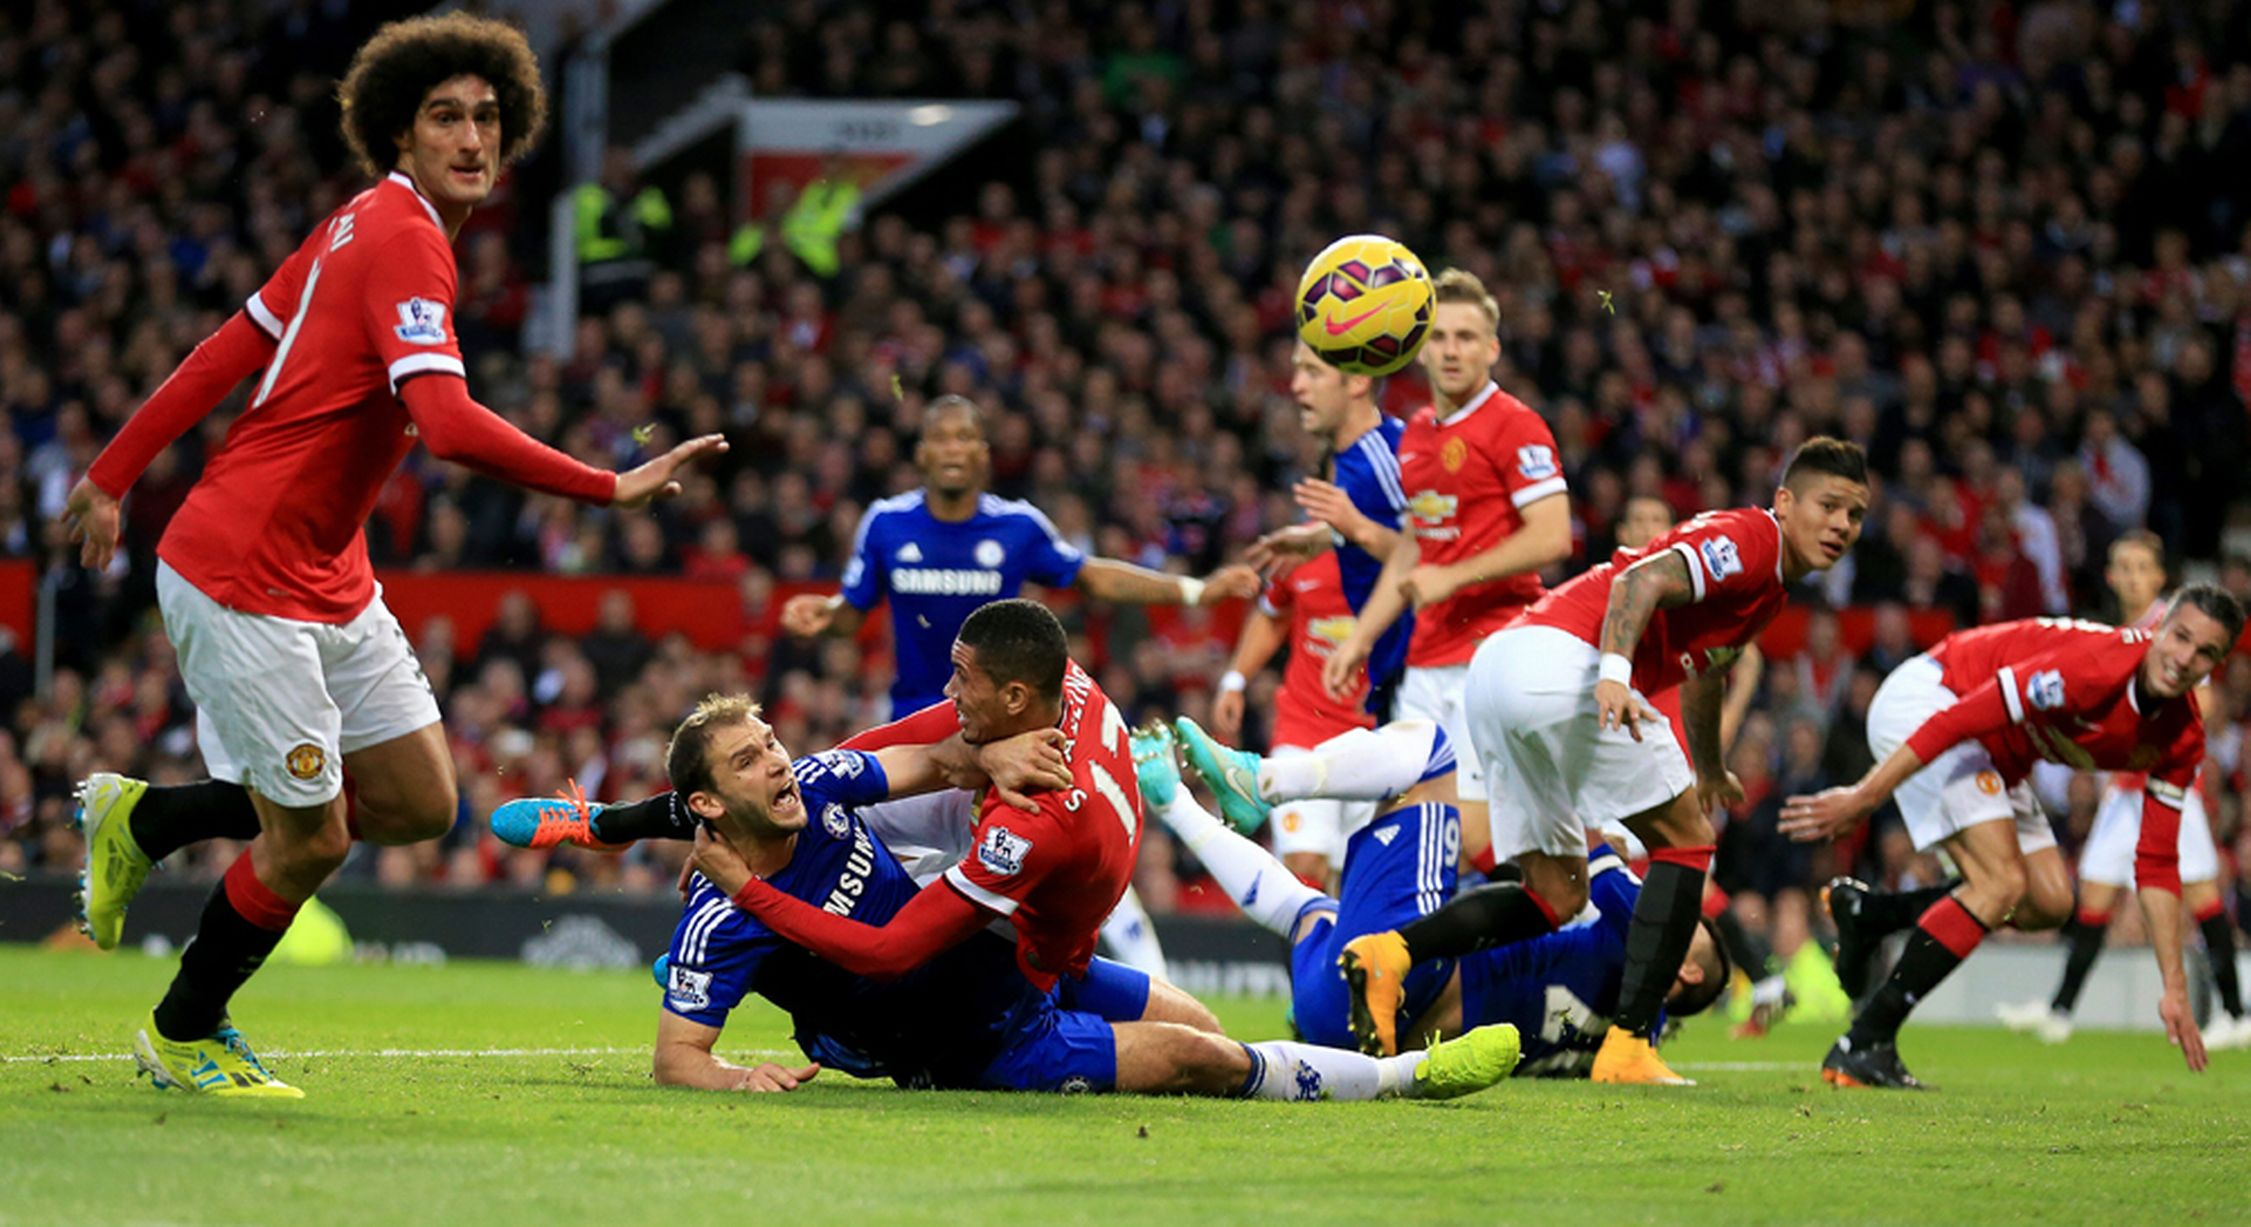 chelsea vs man united - photo #13